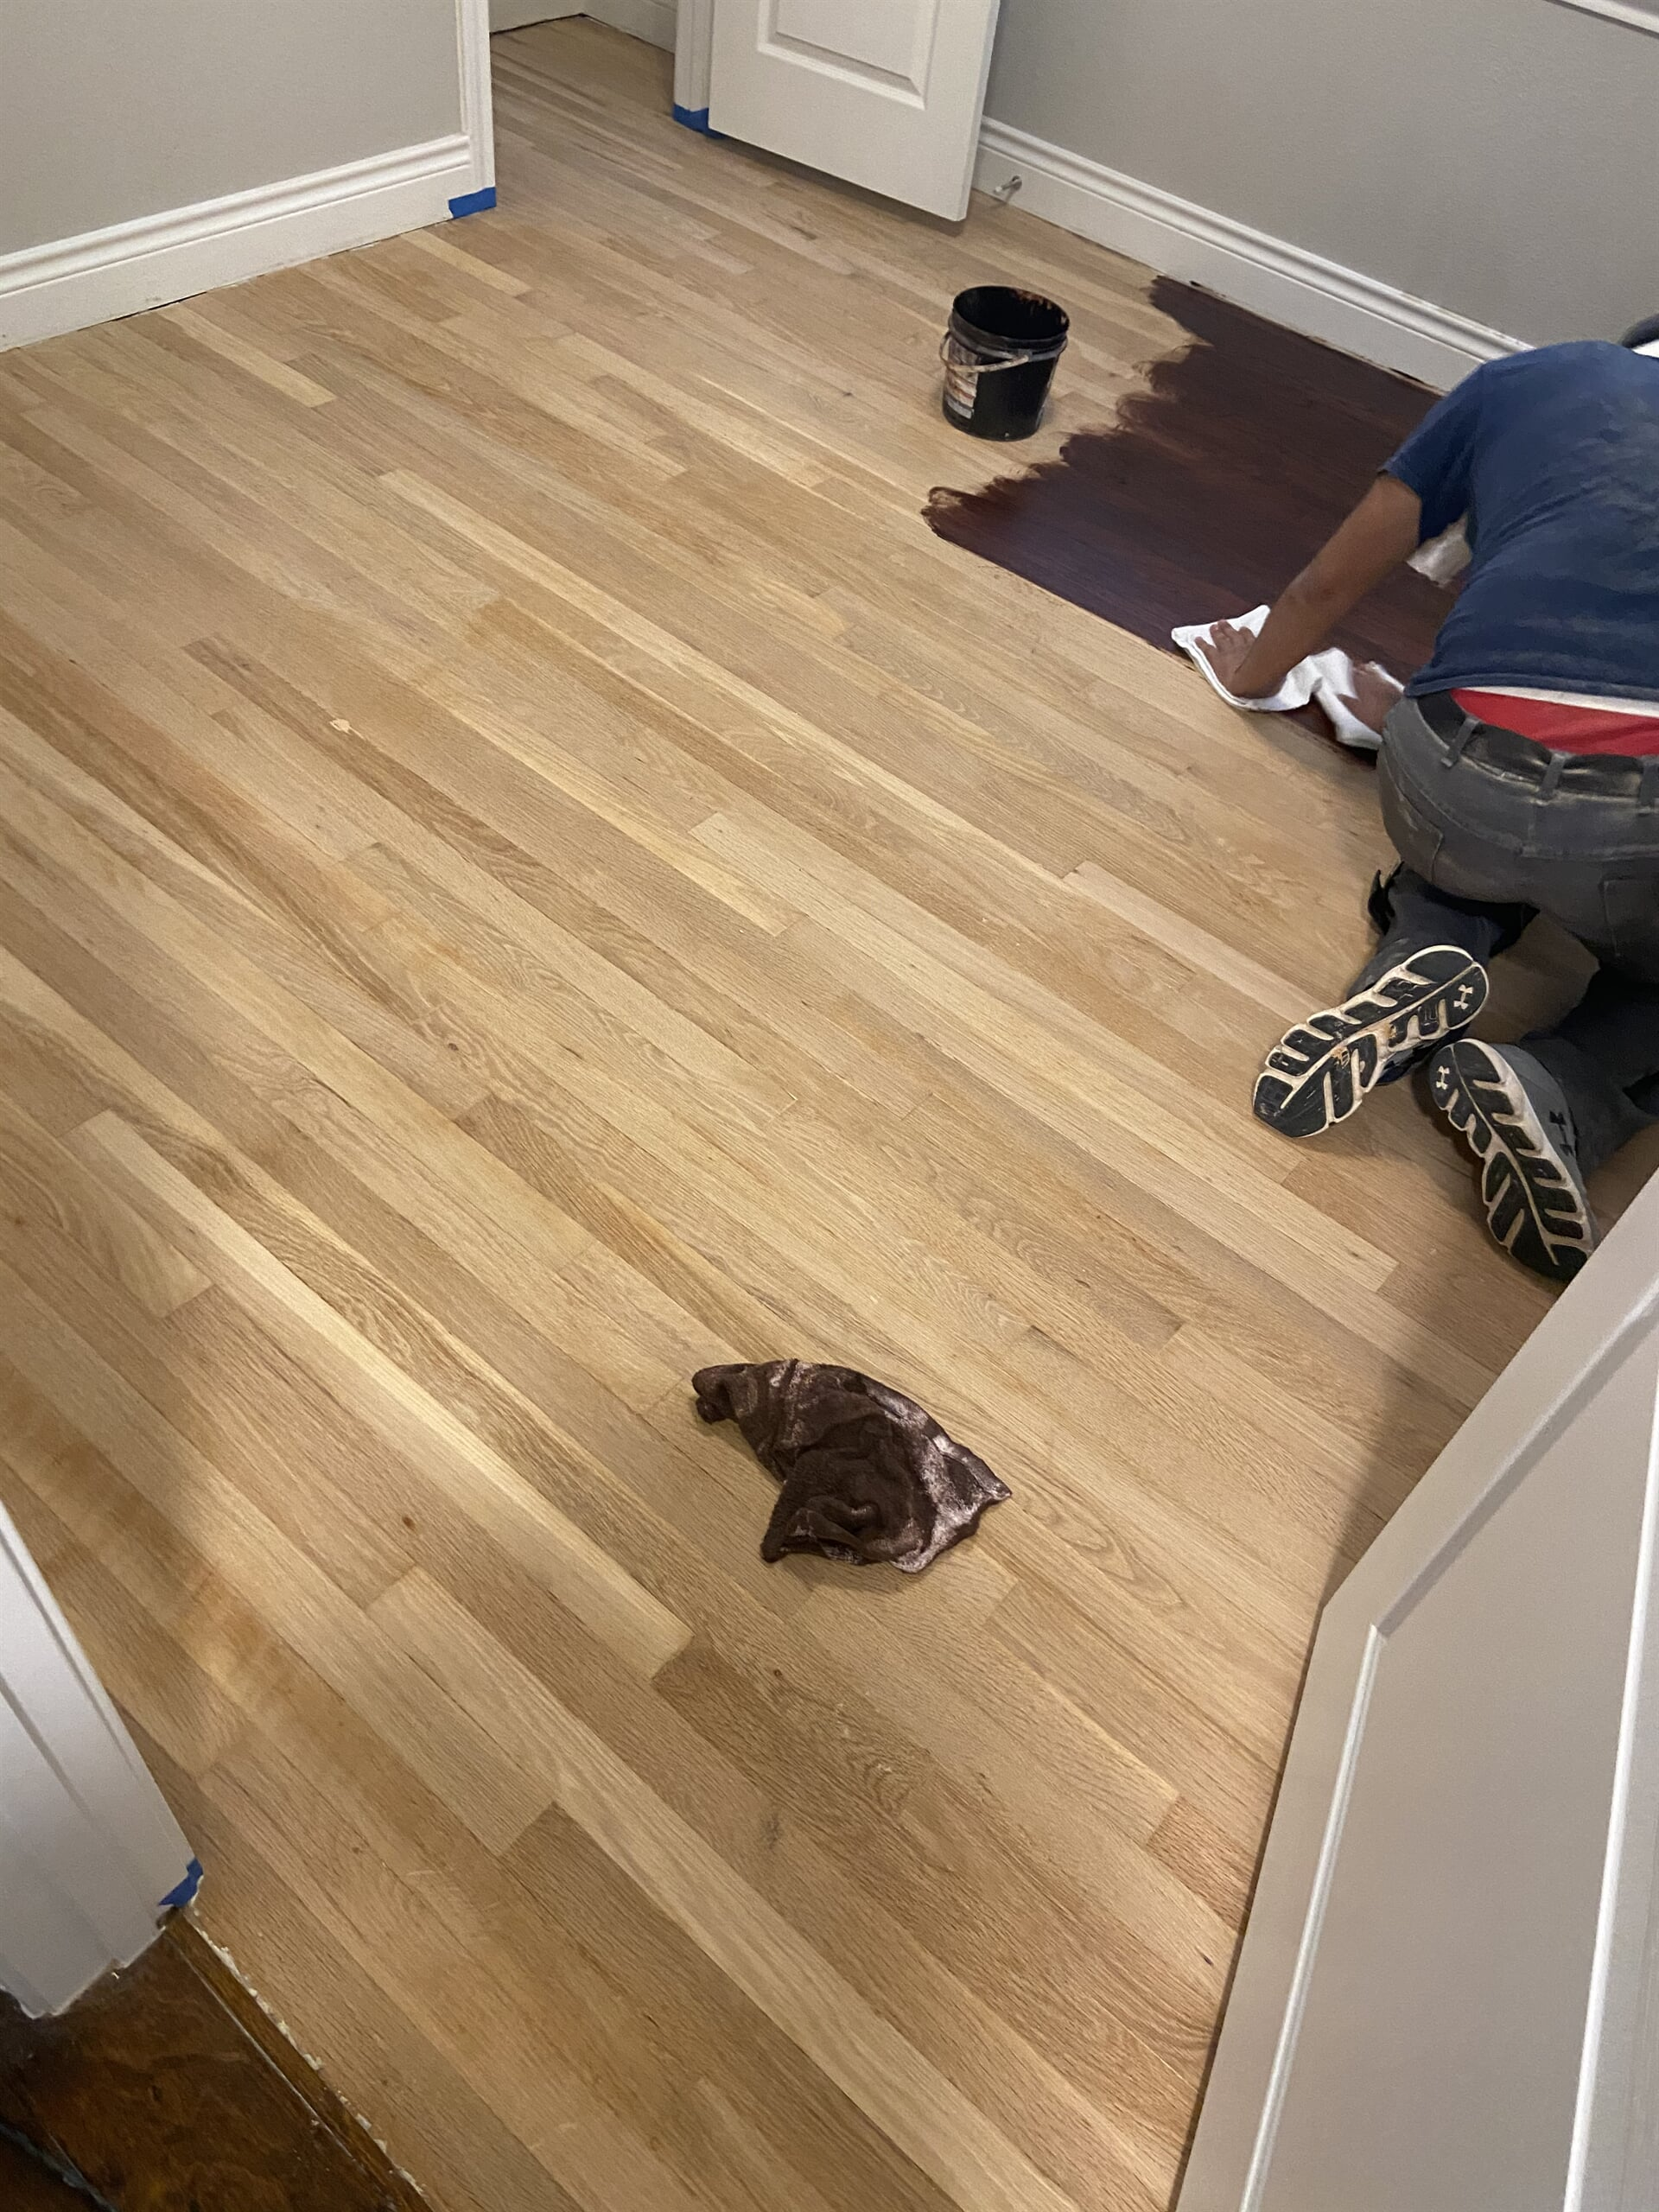 Hardwood refinishing from Houston Floor Installation Services in Humble, TX